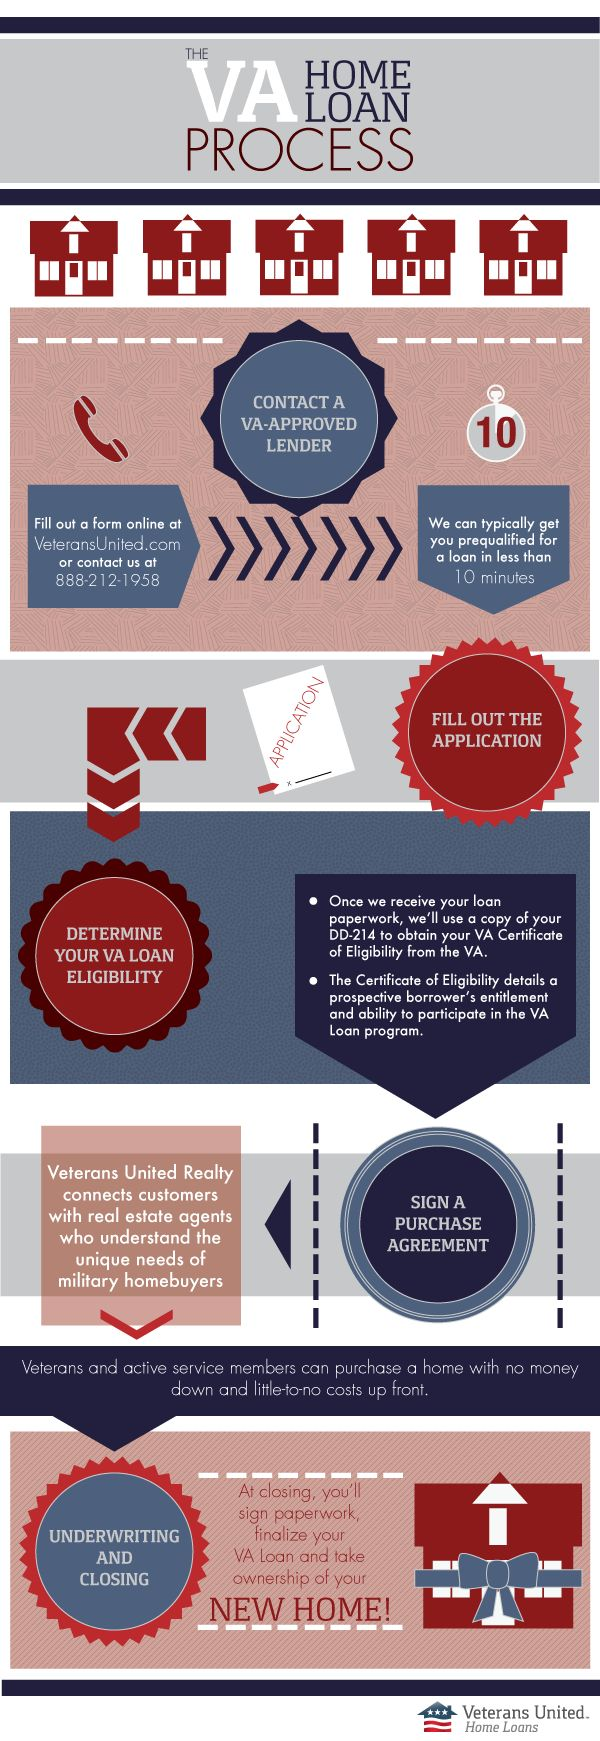 The 5 Basic Steps of the VA Home Loan Process